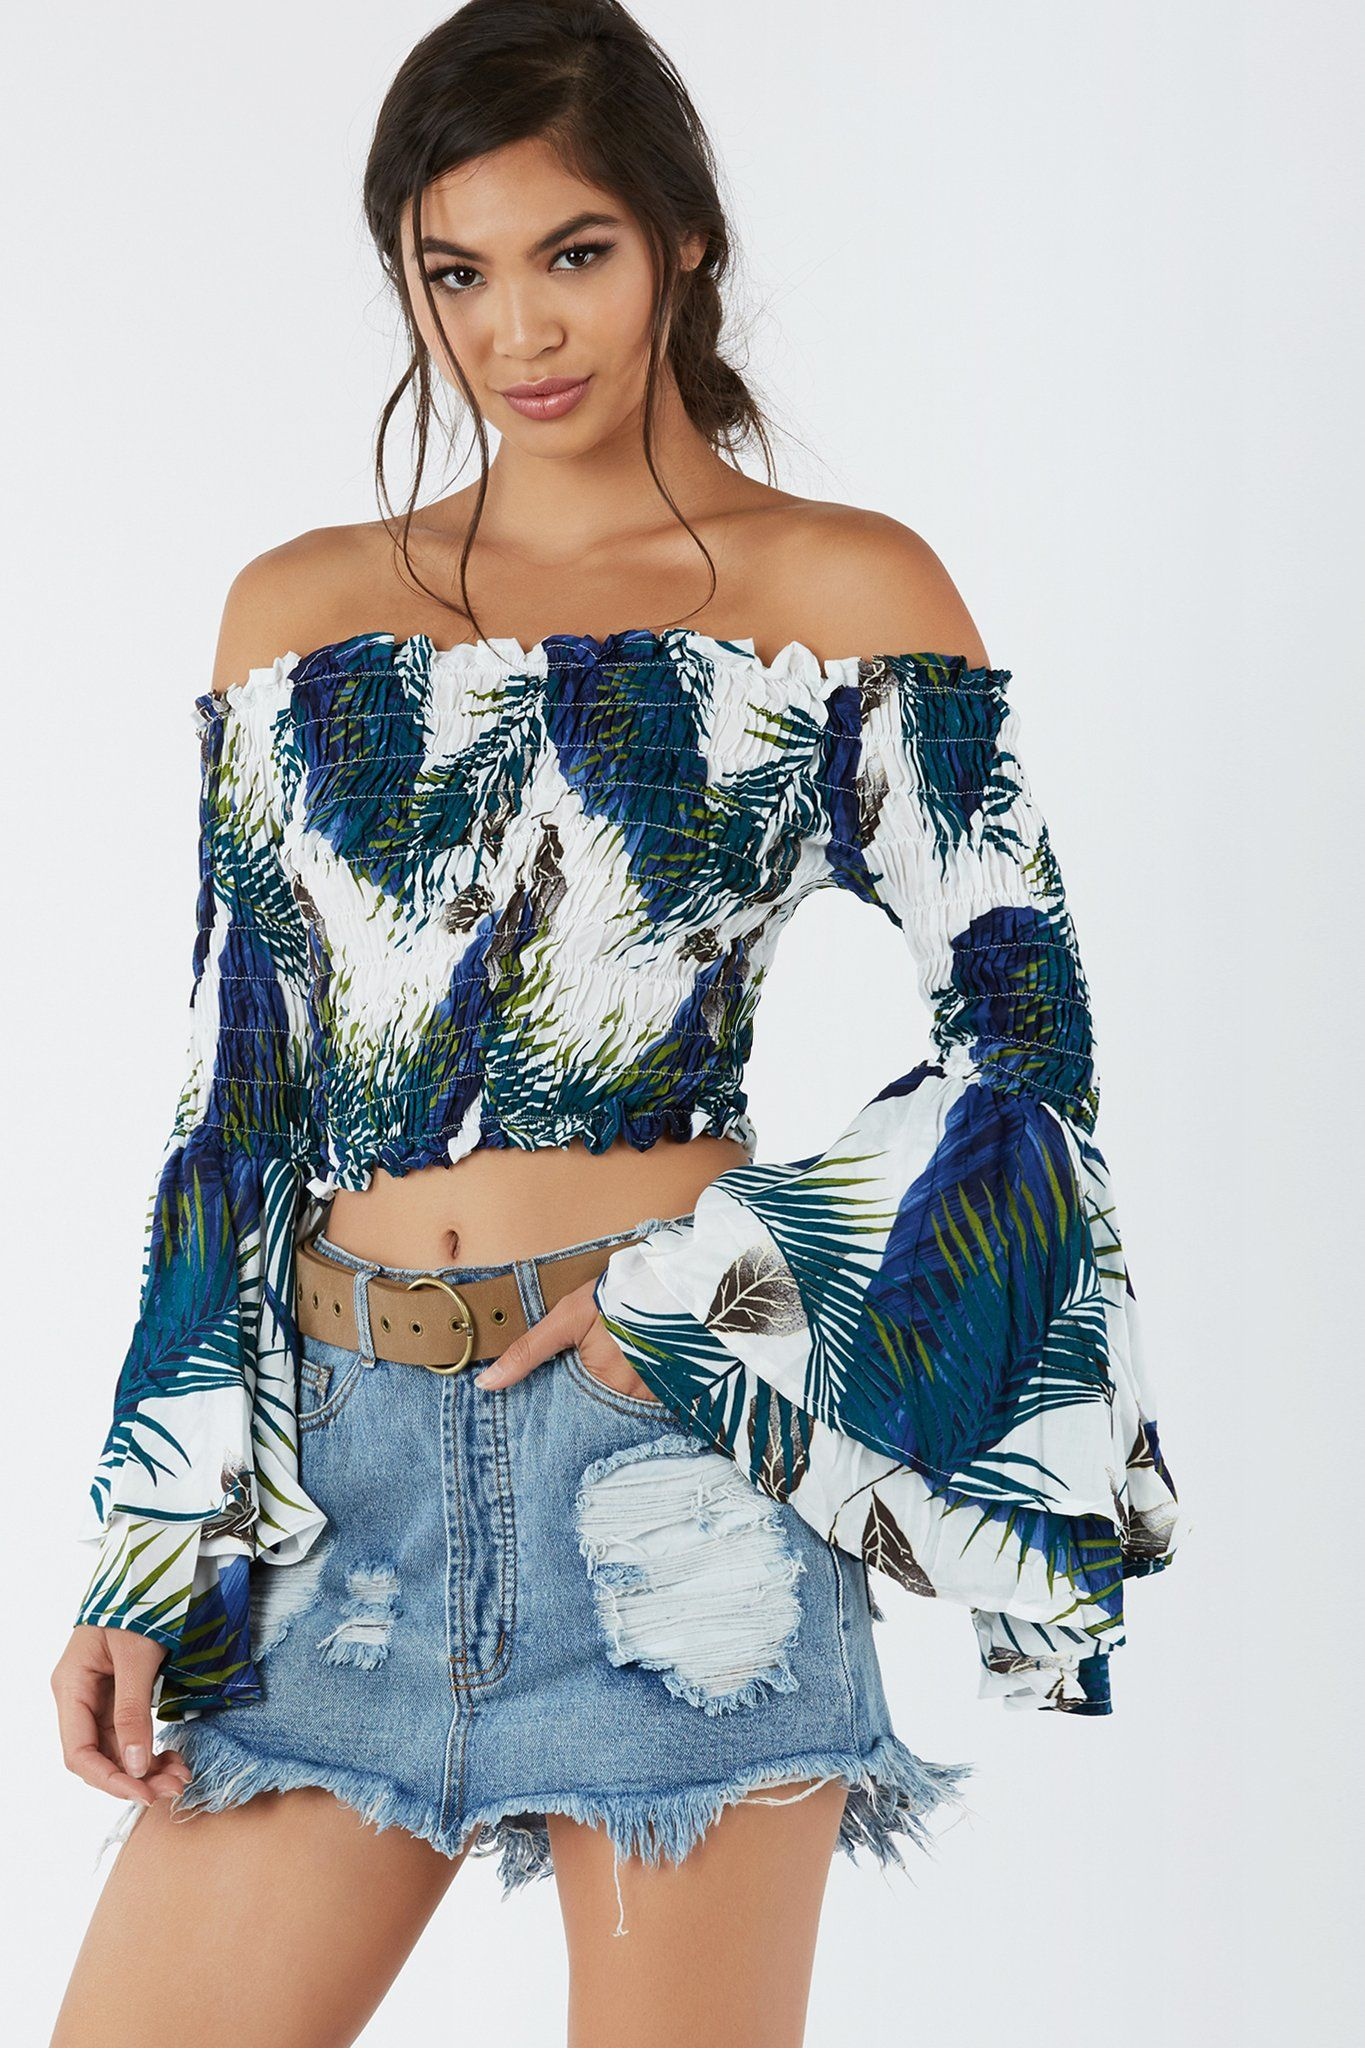 Fun off shoulder top with flowy bell ruffled sleeves. Tropical print throughout with elasticized fit and cropped hem finish.